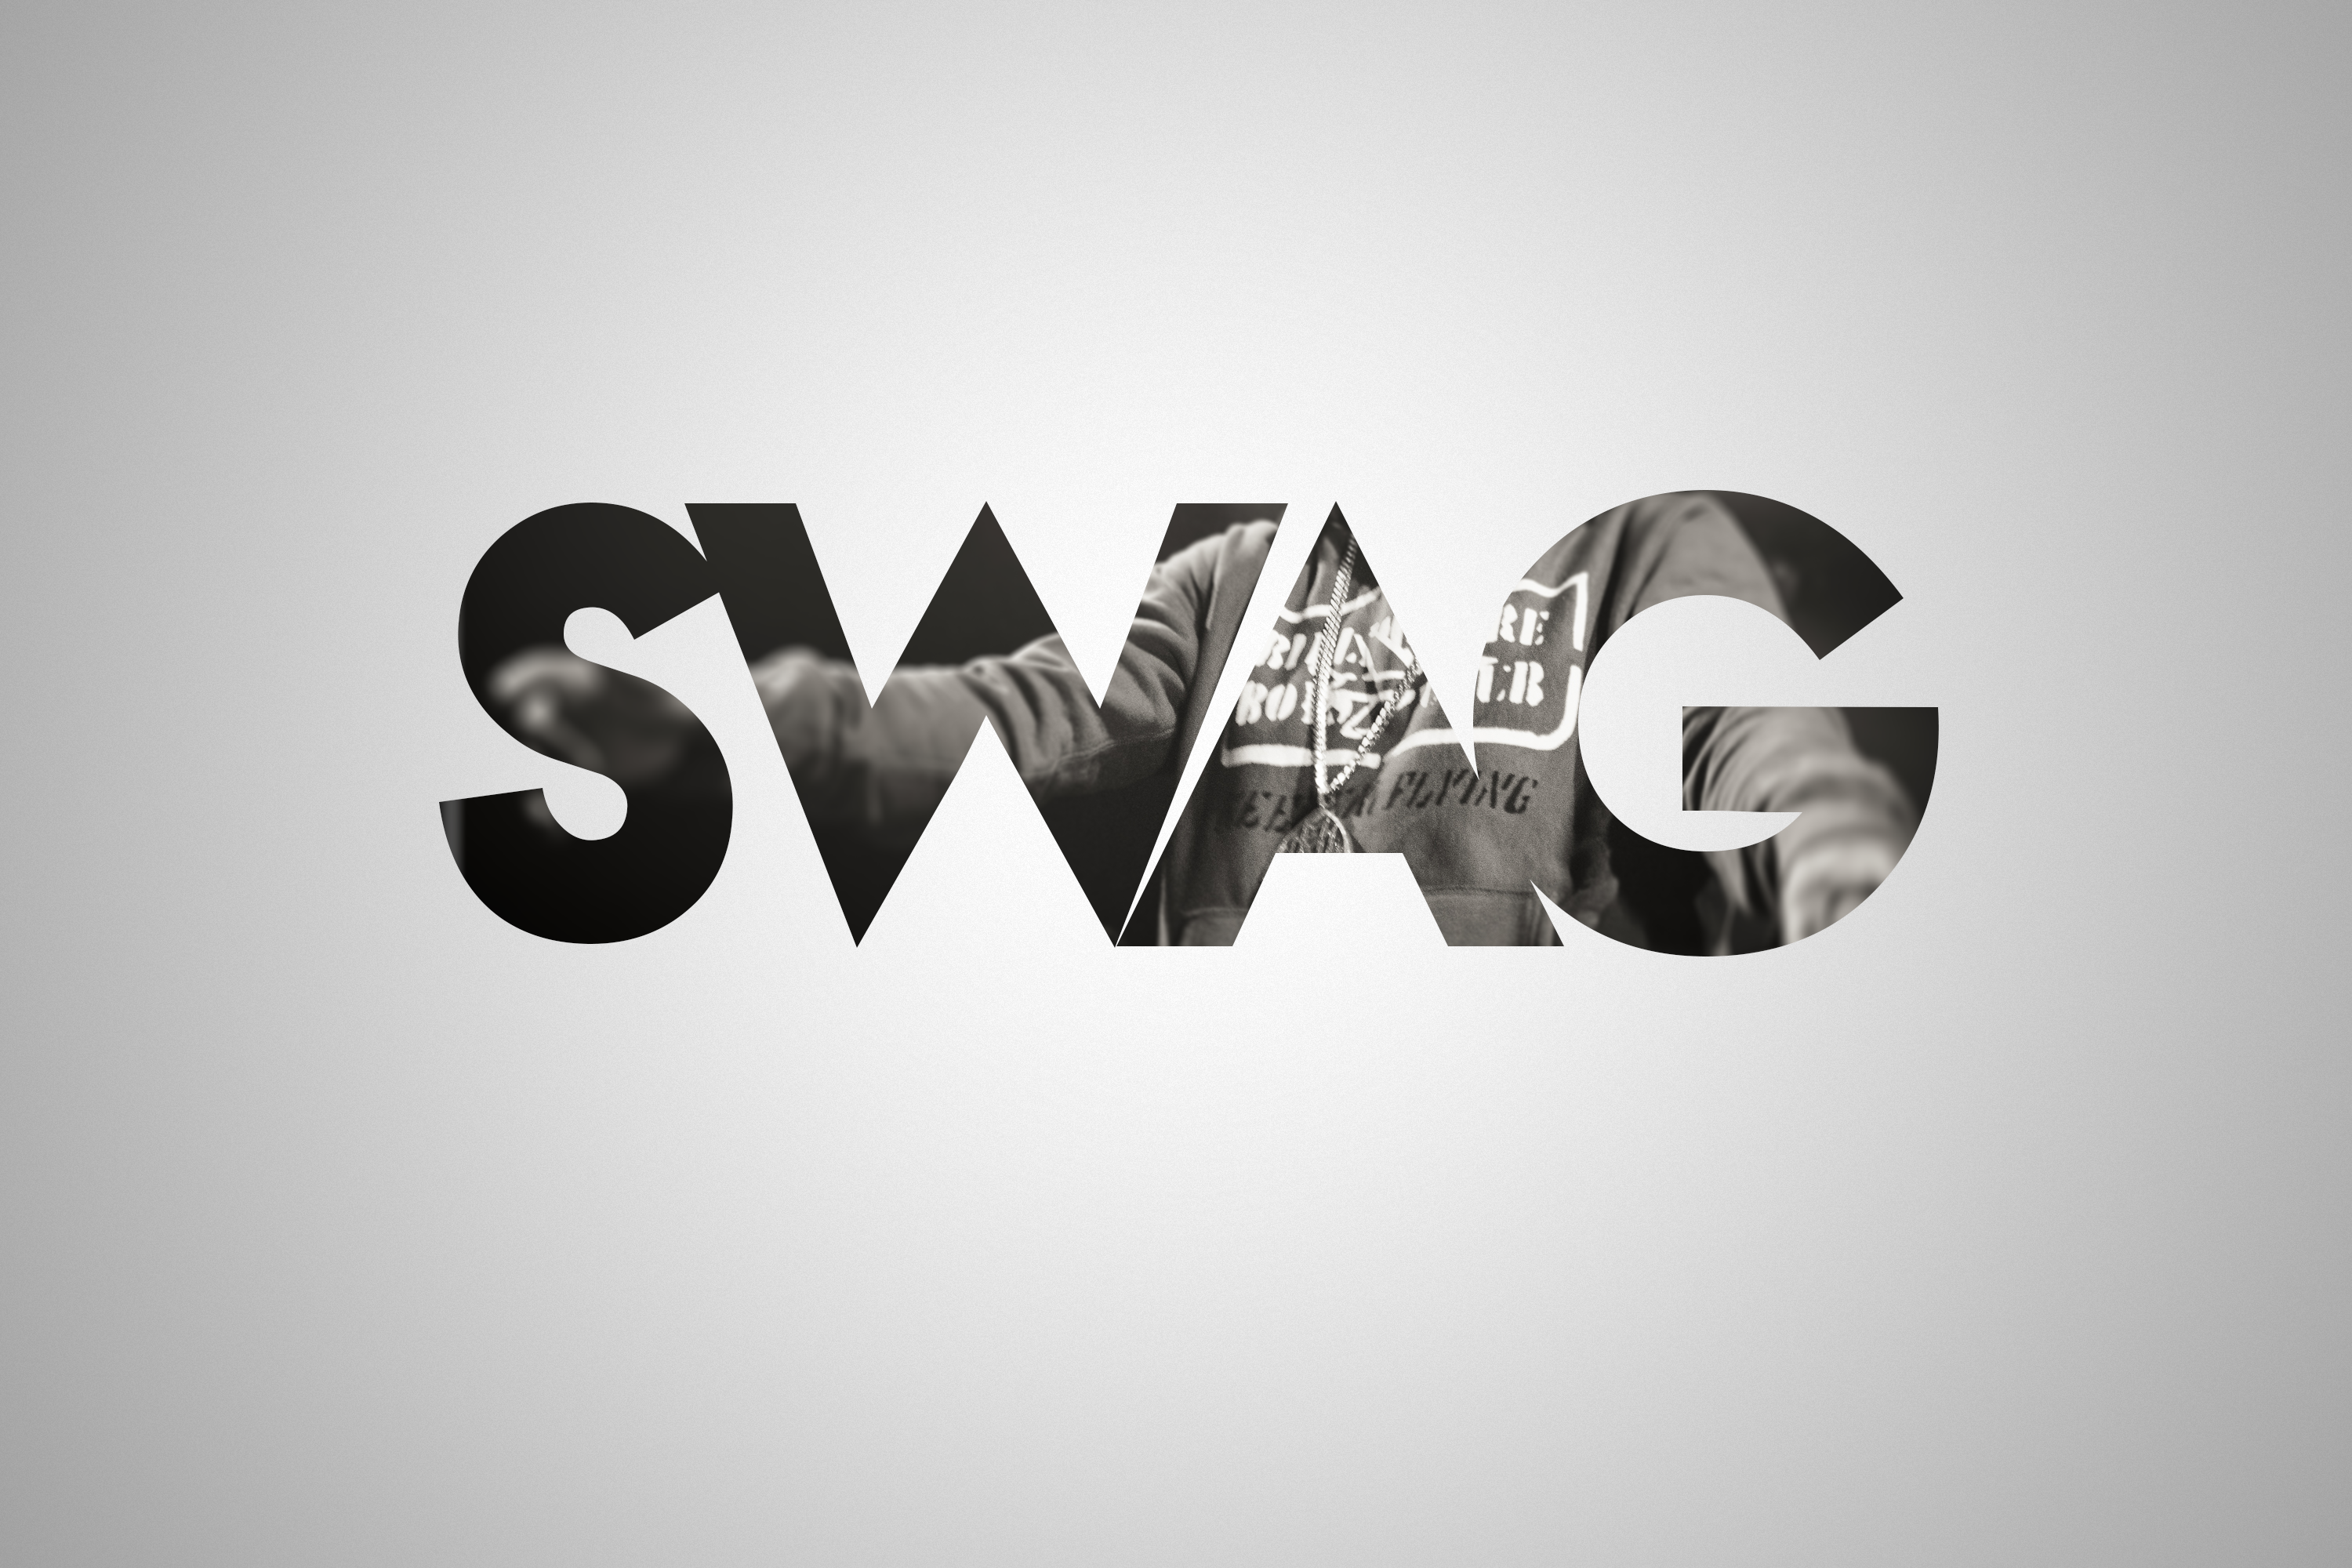 Swag Wallpaper Download